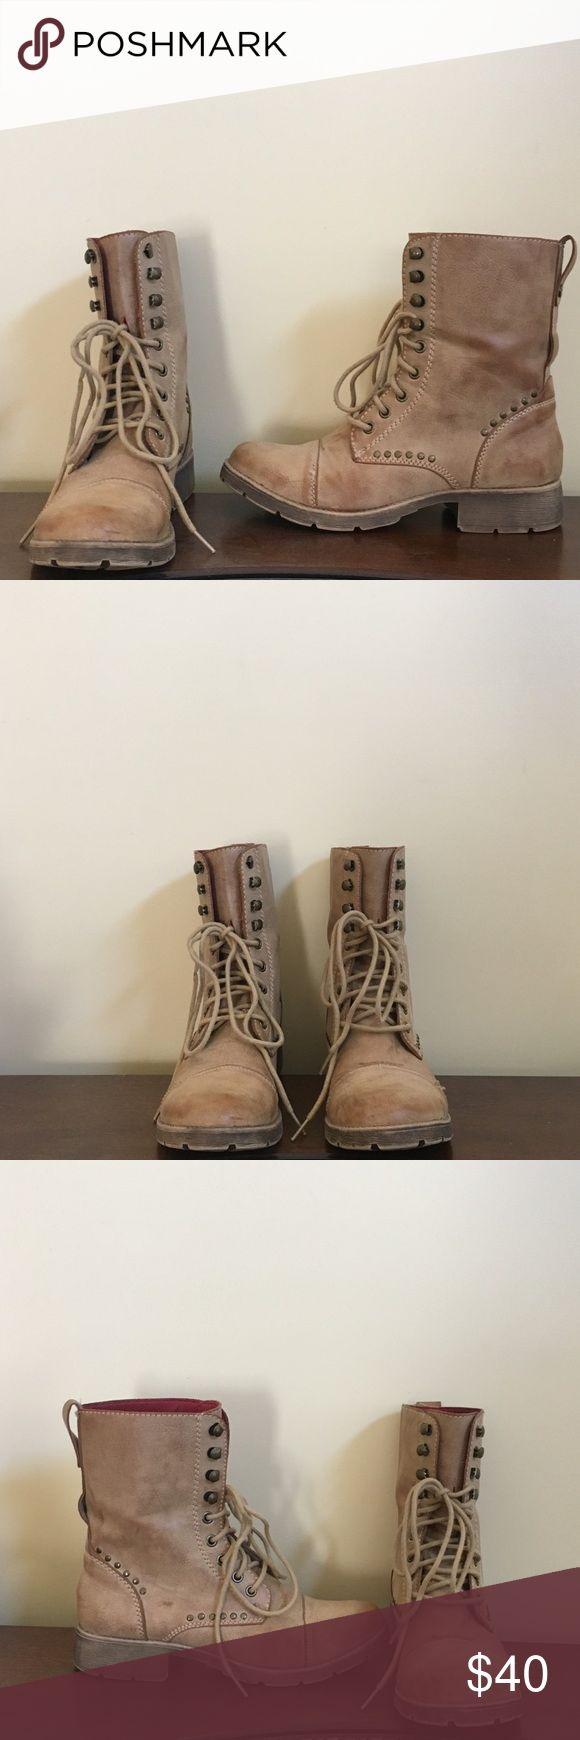 American Rag Beige Combat Boots American Rag beige combat boots with beaded detailing. Woman's size 8. Only worn a handful of times. Great condition! American Rag Shoes Combat & Moto Boots